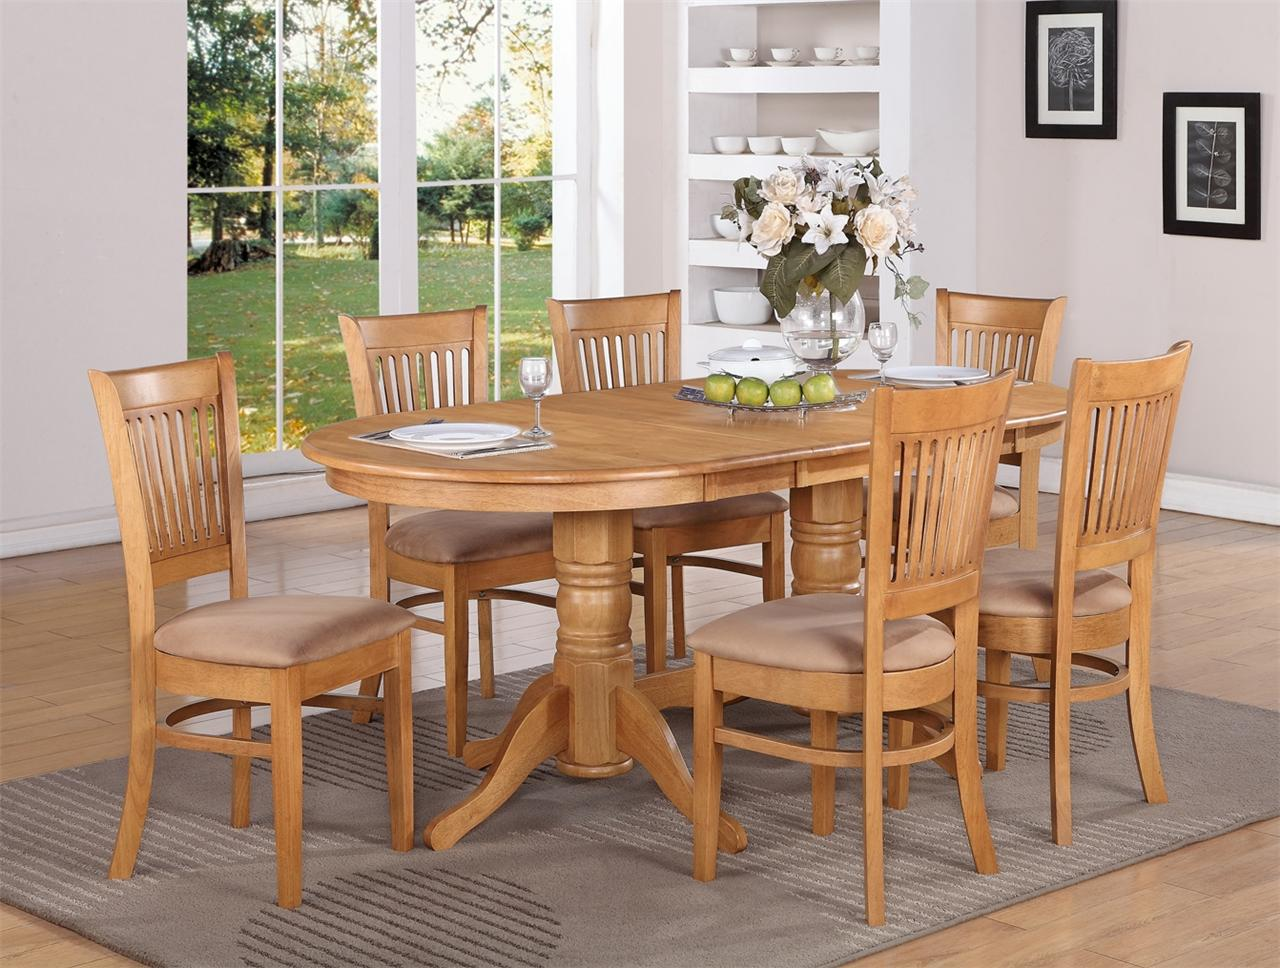 9 pc vancouver oval dinette kitchen dining set table w 8 On oak dining room furniture